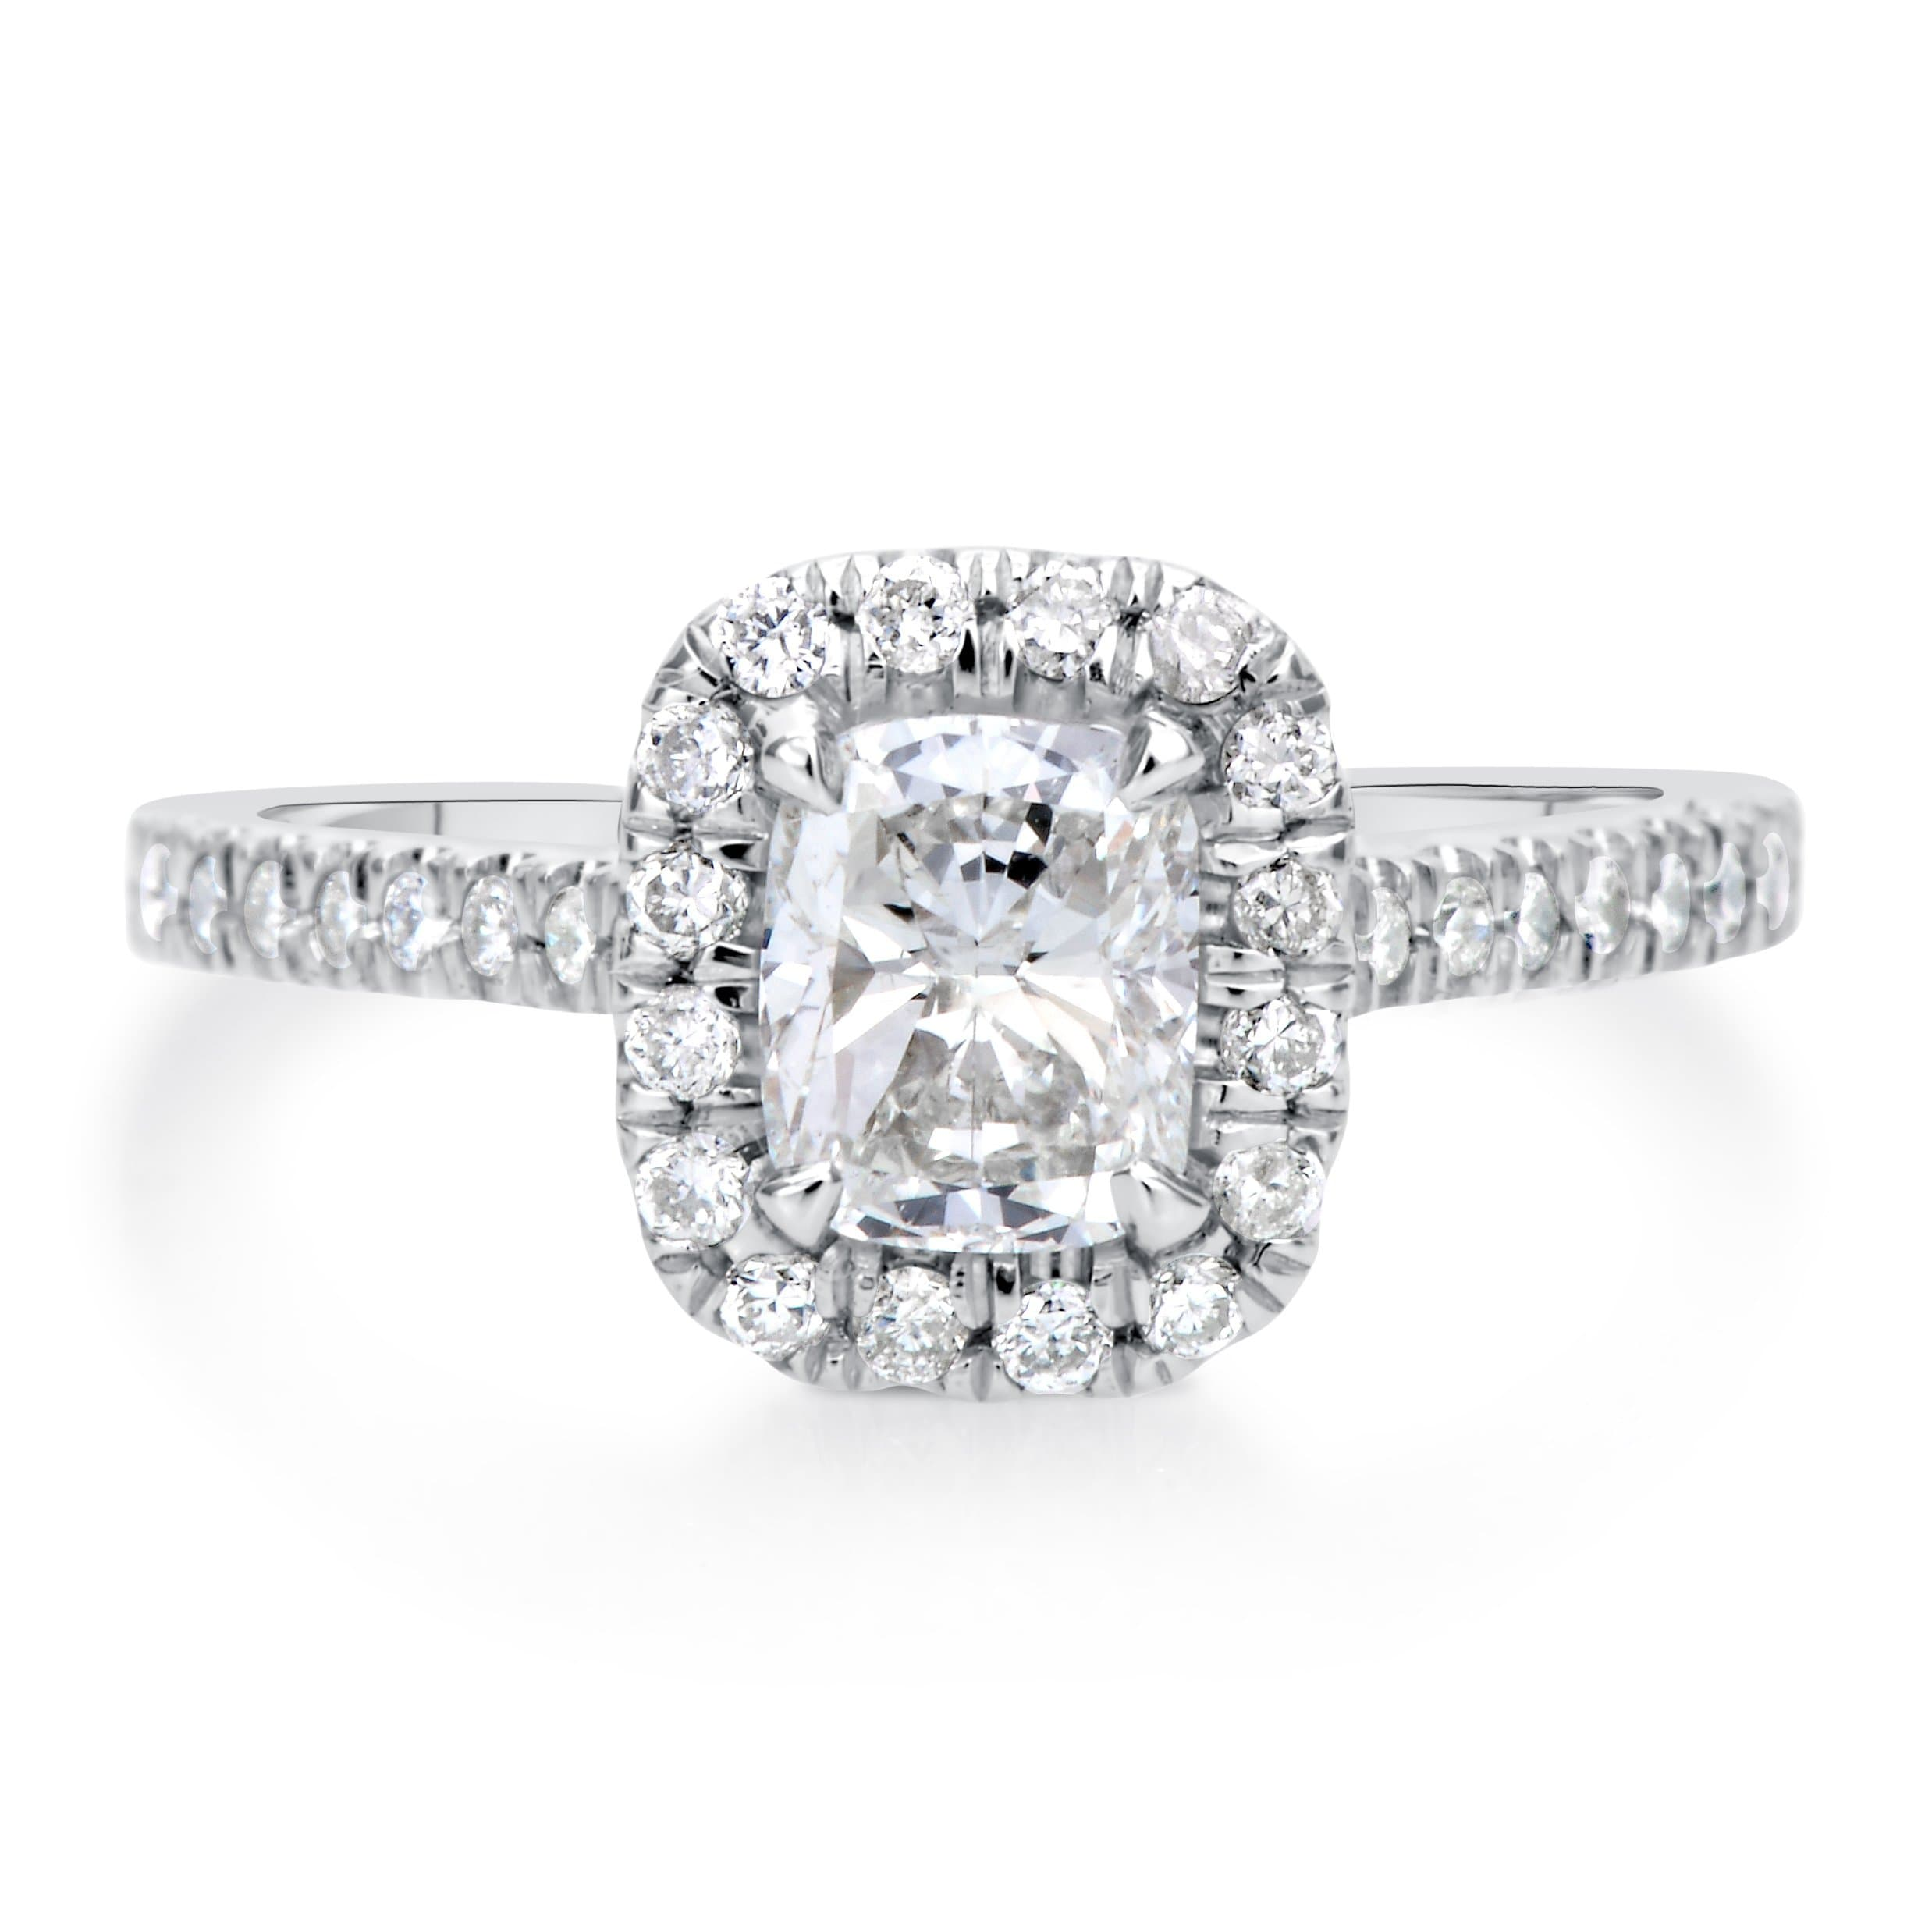 1.41 ct Cushion Cut Diamond Engagement Ring